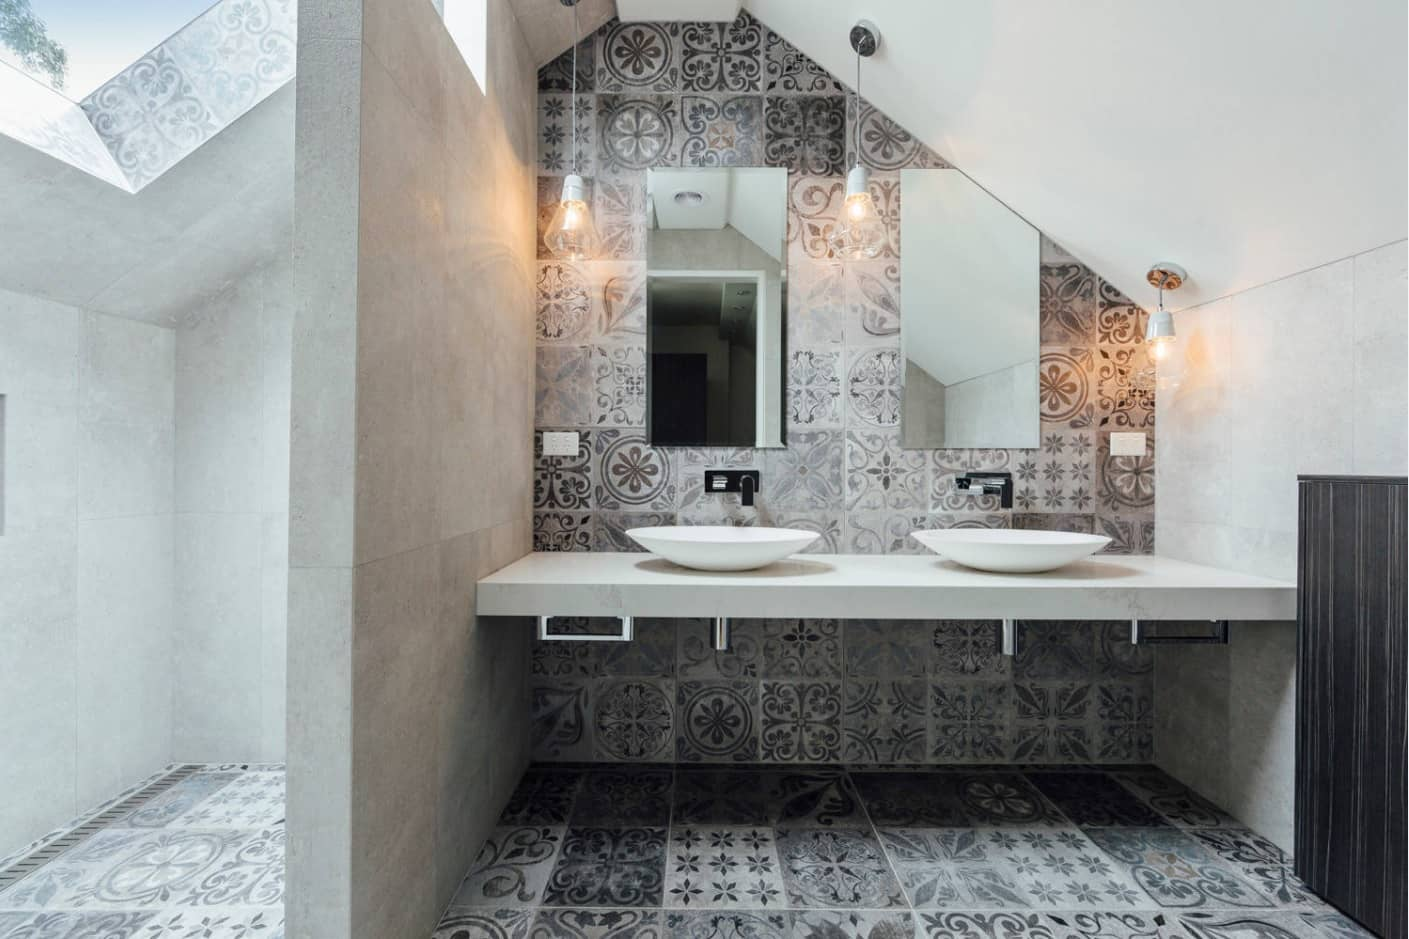 Whole the bathroom interior in the Moroccan Zellij tiles for unrepeatable atmosphere